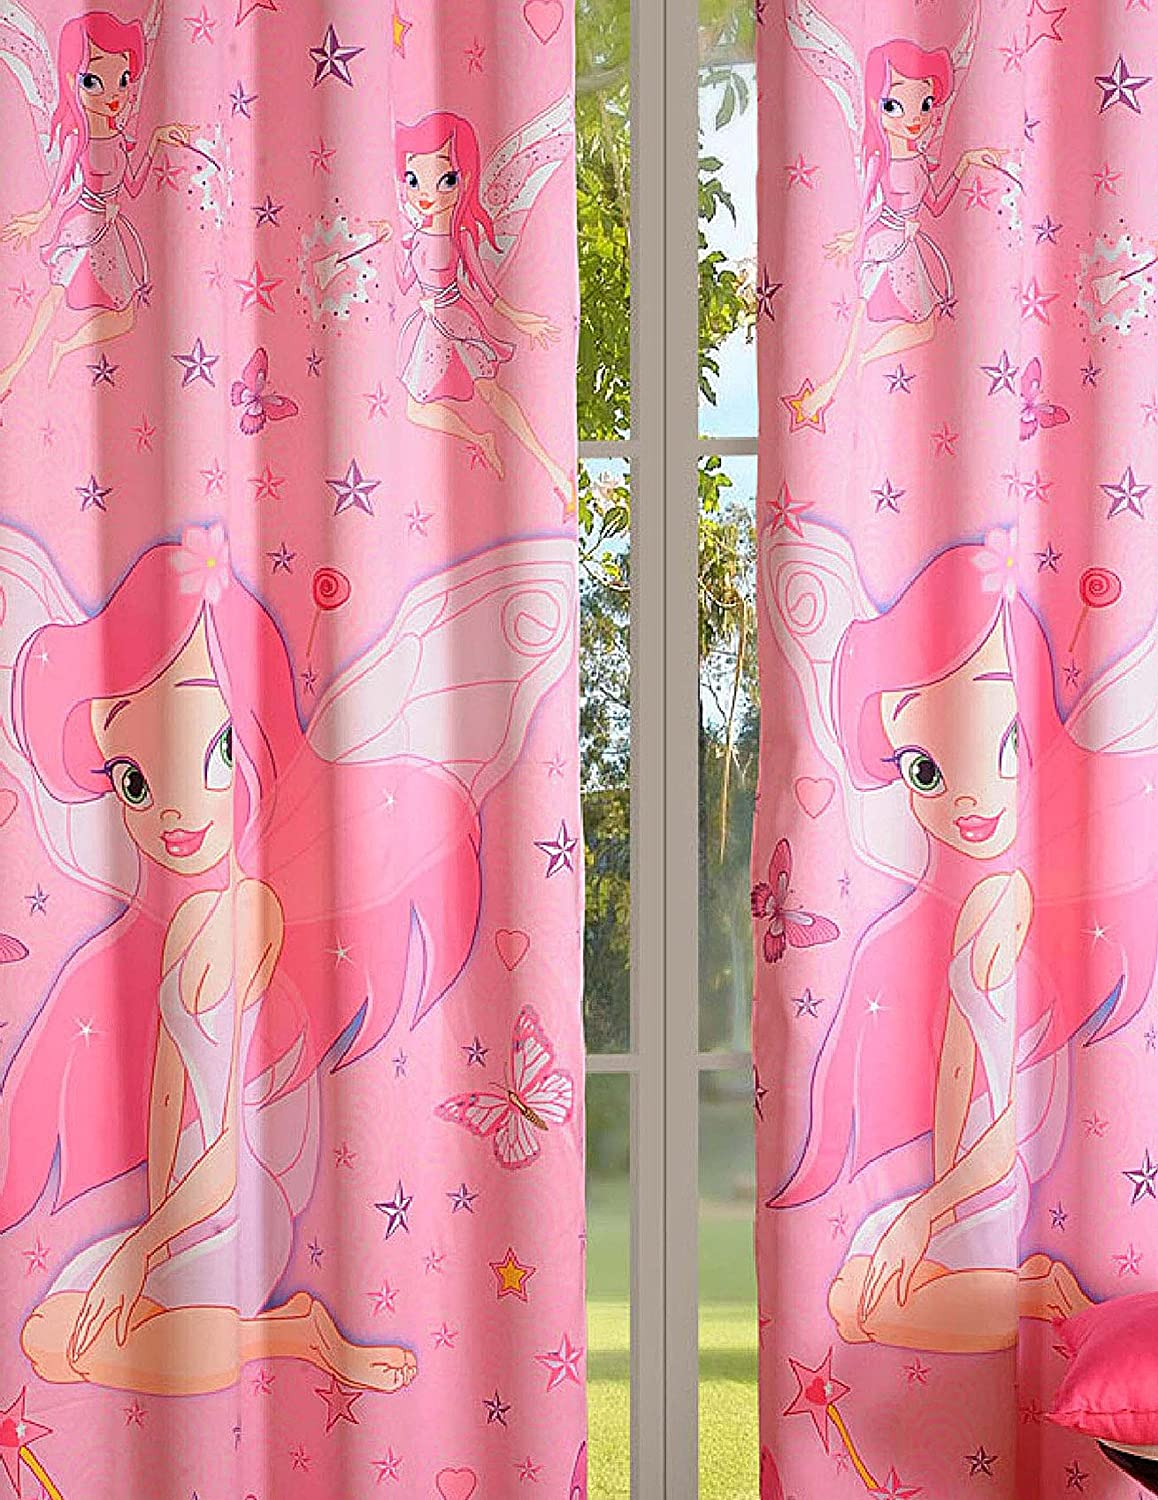 curtains curtain unique modern window colors curtainsrose photos pink solid rose satin ideas